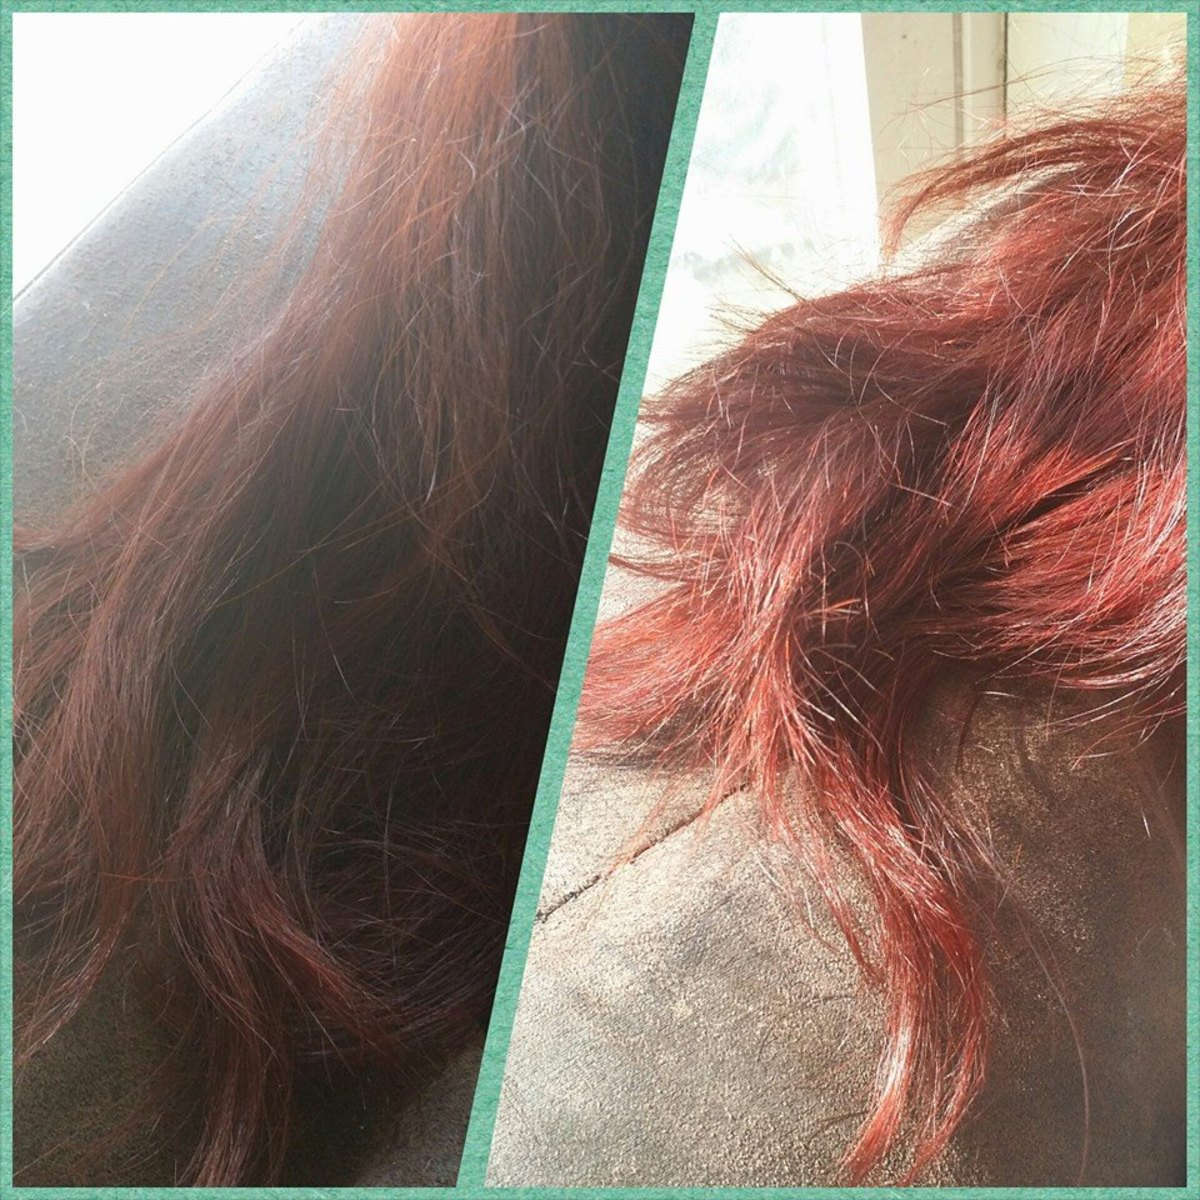 Showing how vibrant my Wine Red henna from Henna Color Lab is indoors vs. in the sunlight. I hadn't done a henna application in several months by time this picture was taken.